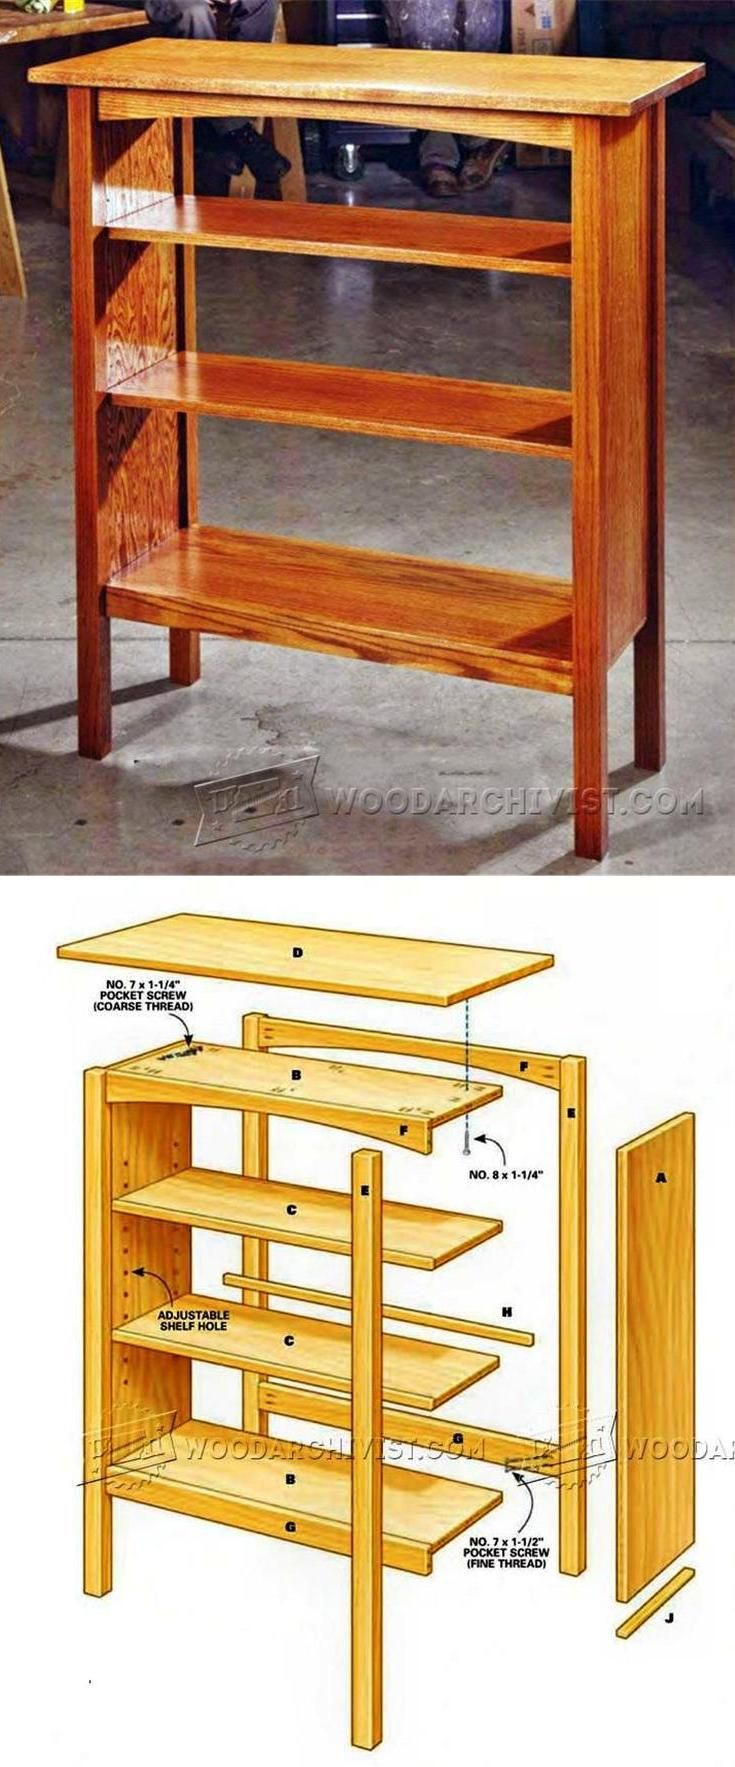 Simple Bookcase Plans - Furniture Plans and Projects | WoodArchivist.com - Simple Bookcase Plans - Furniture Plans And Projects